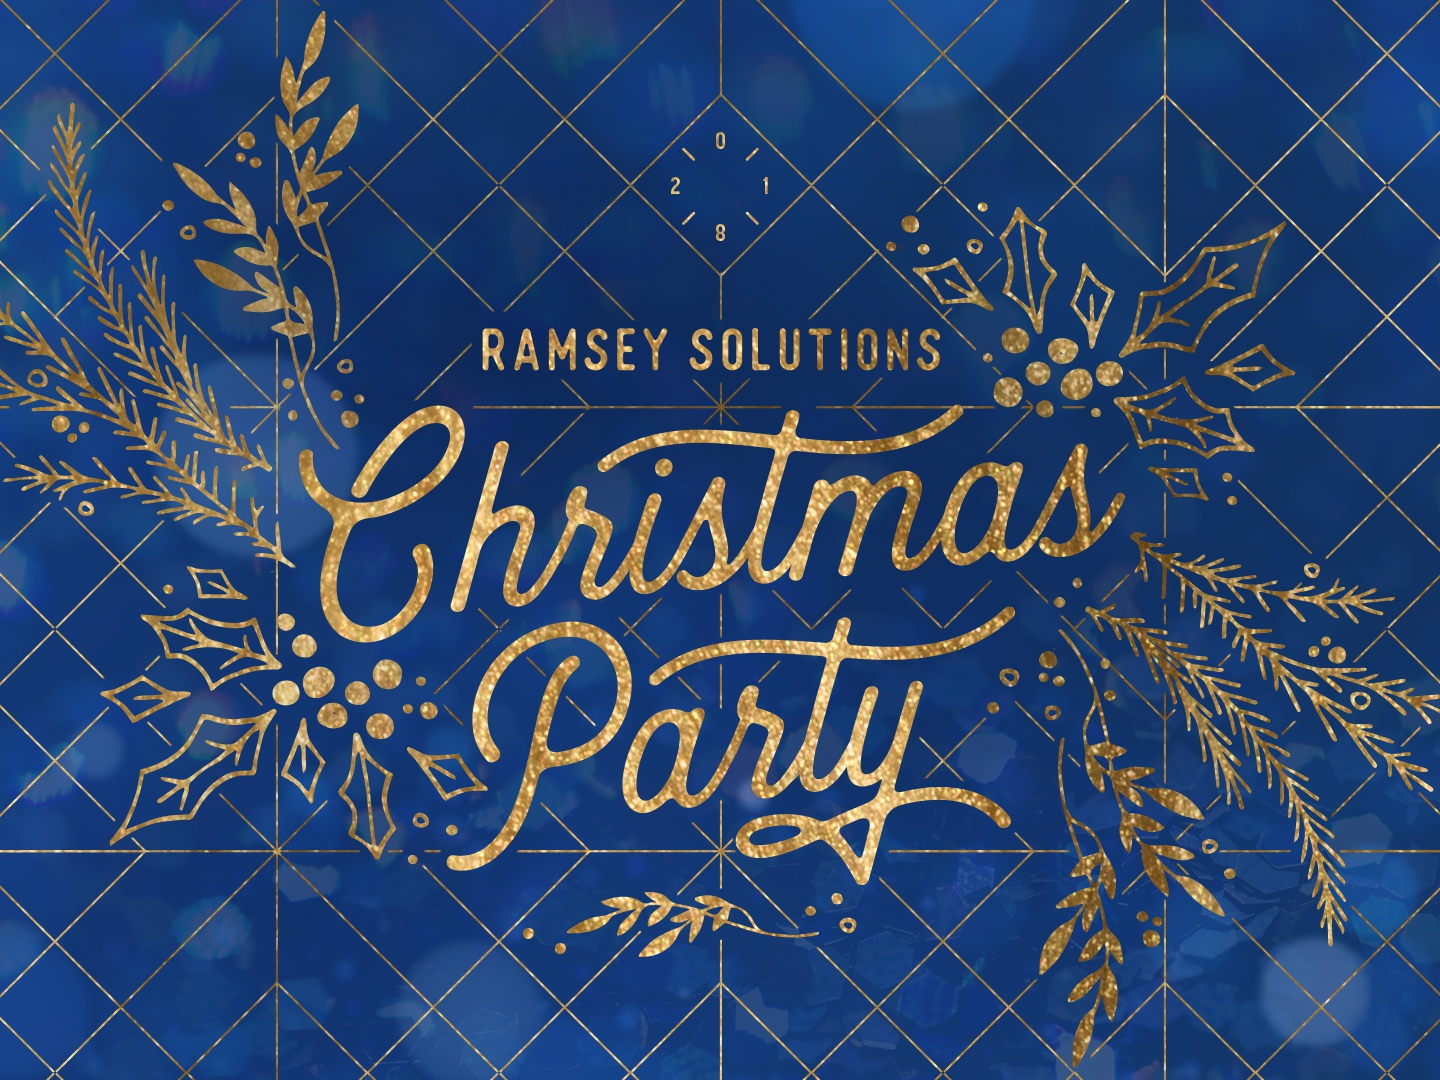 Ramsey Solutions Christmas Party 2020 2018 Ramsey Christmas Party Logo by Dana McCreery for Ramsey